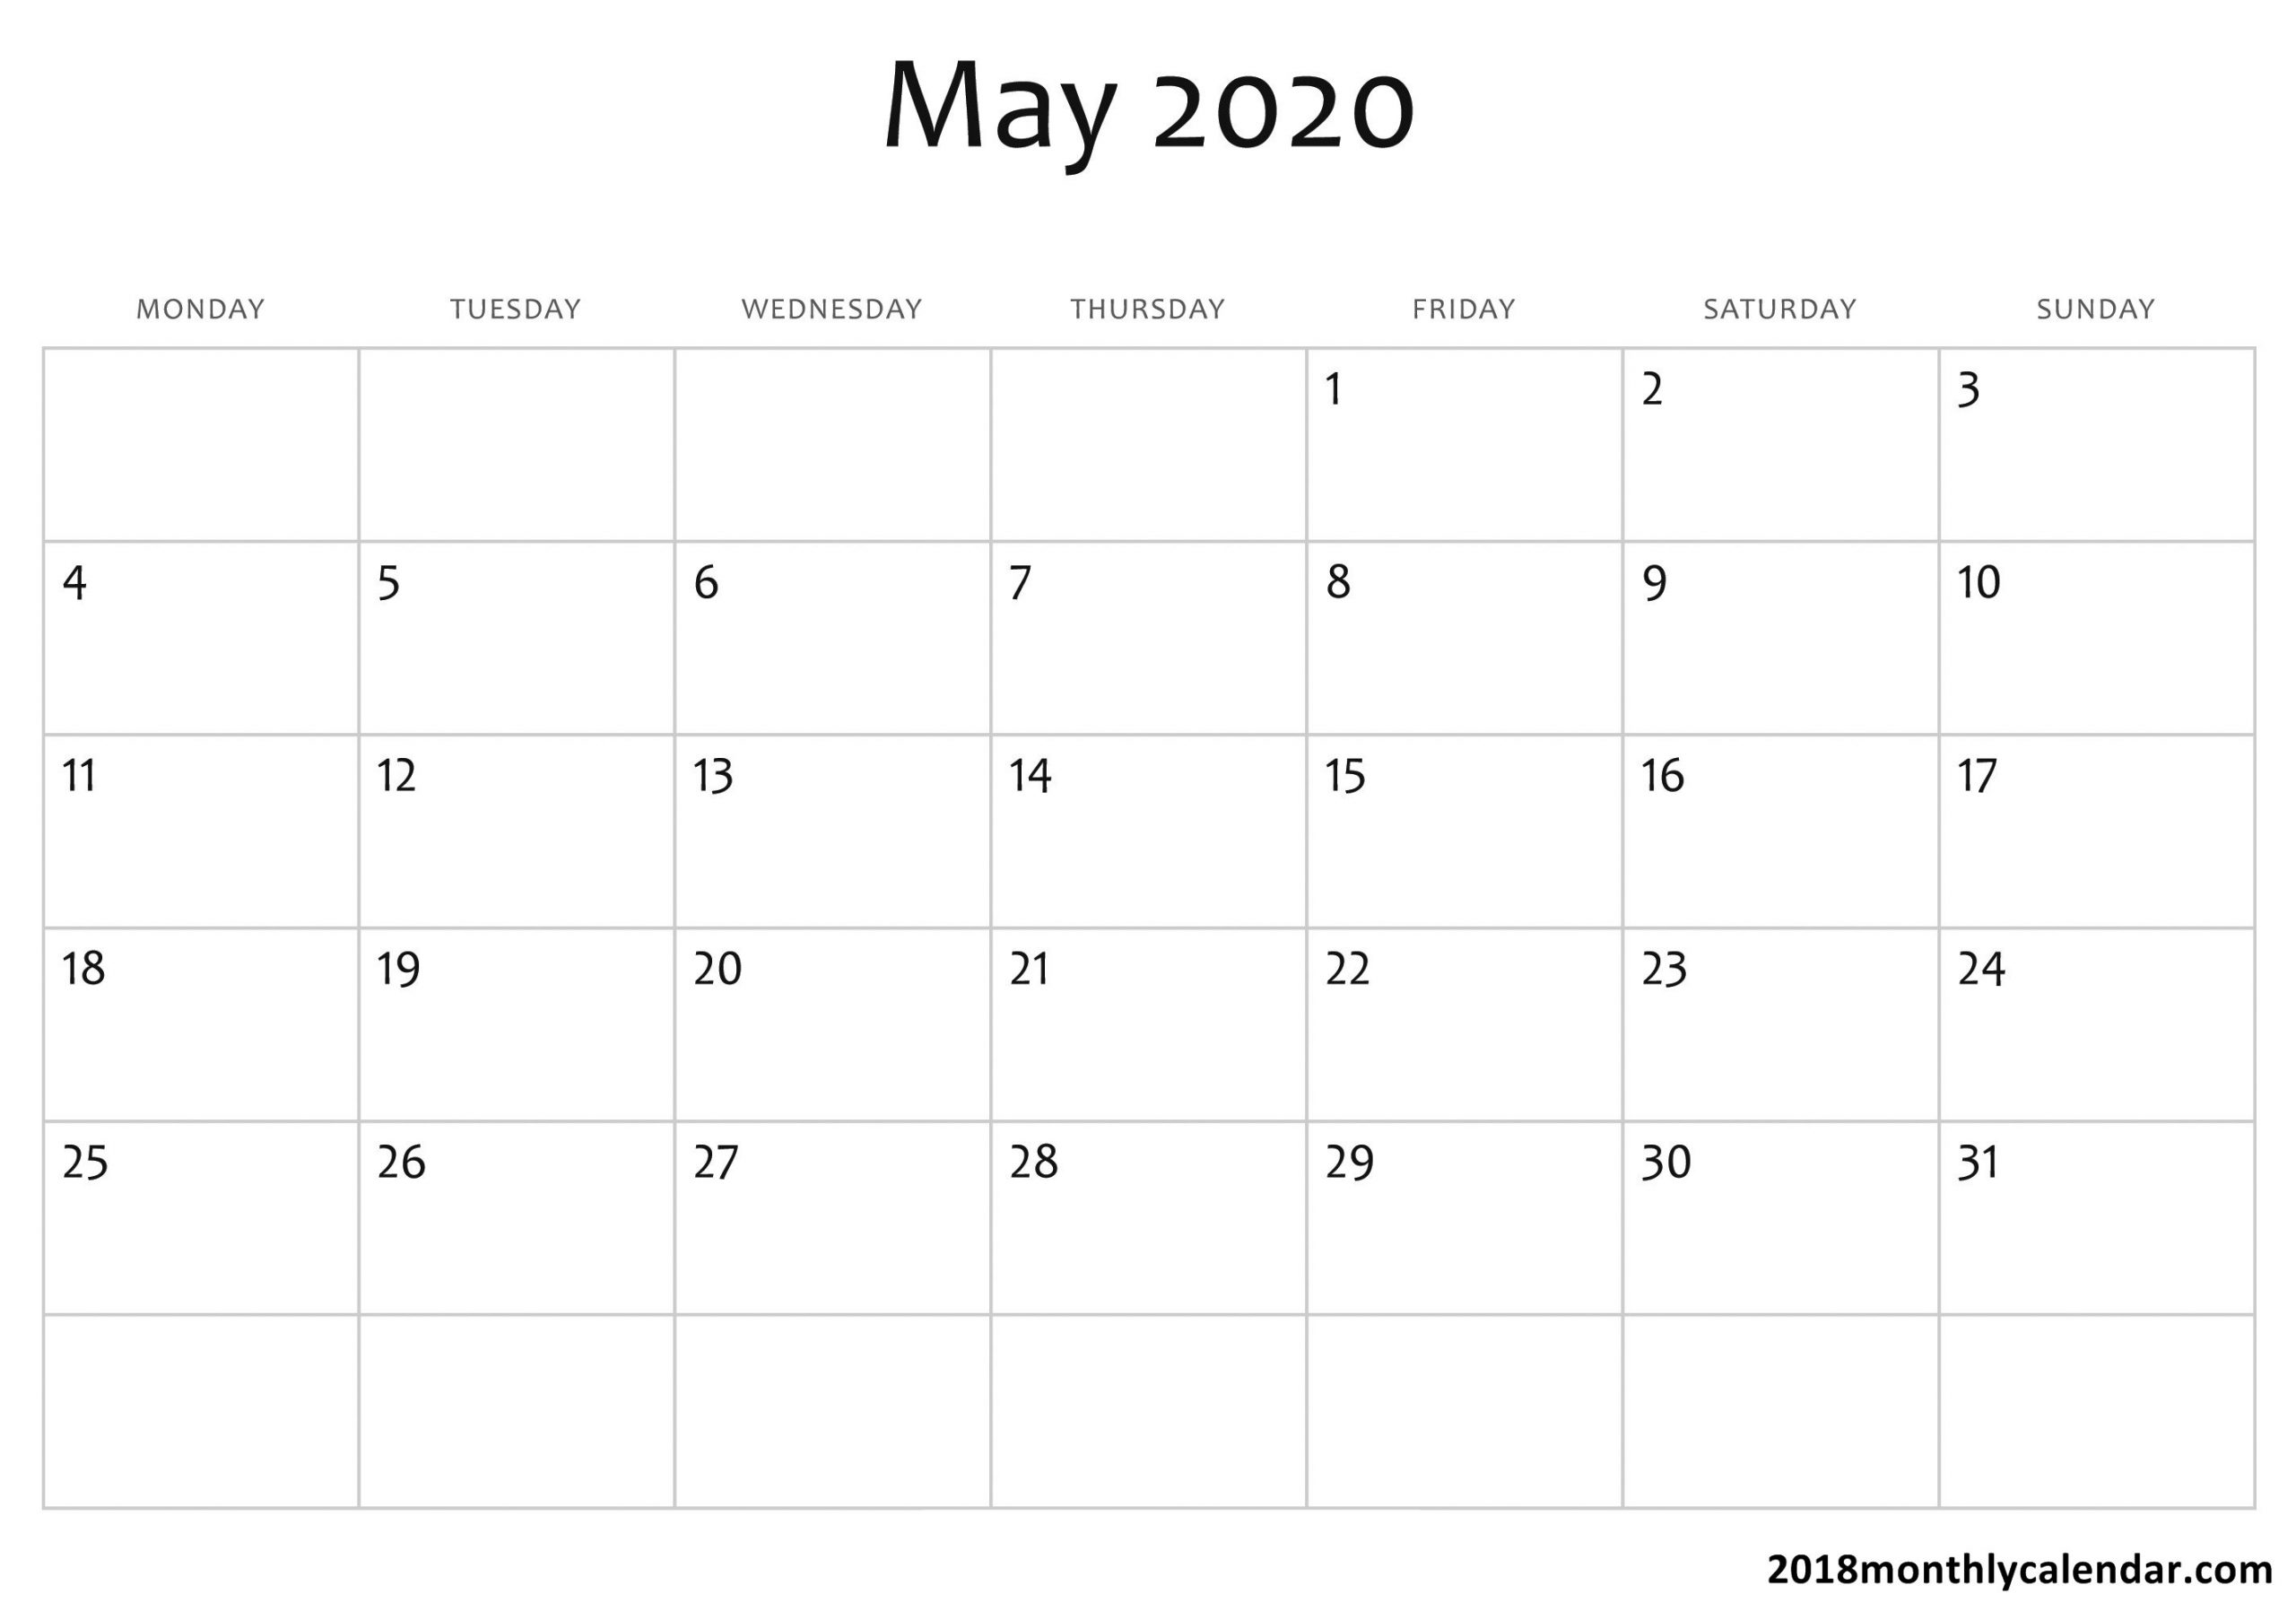 2020 Calender I Can Edit | Calendar Template Printable Calanda Templete That I Can Edit